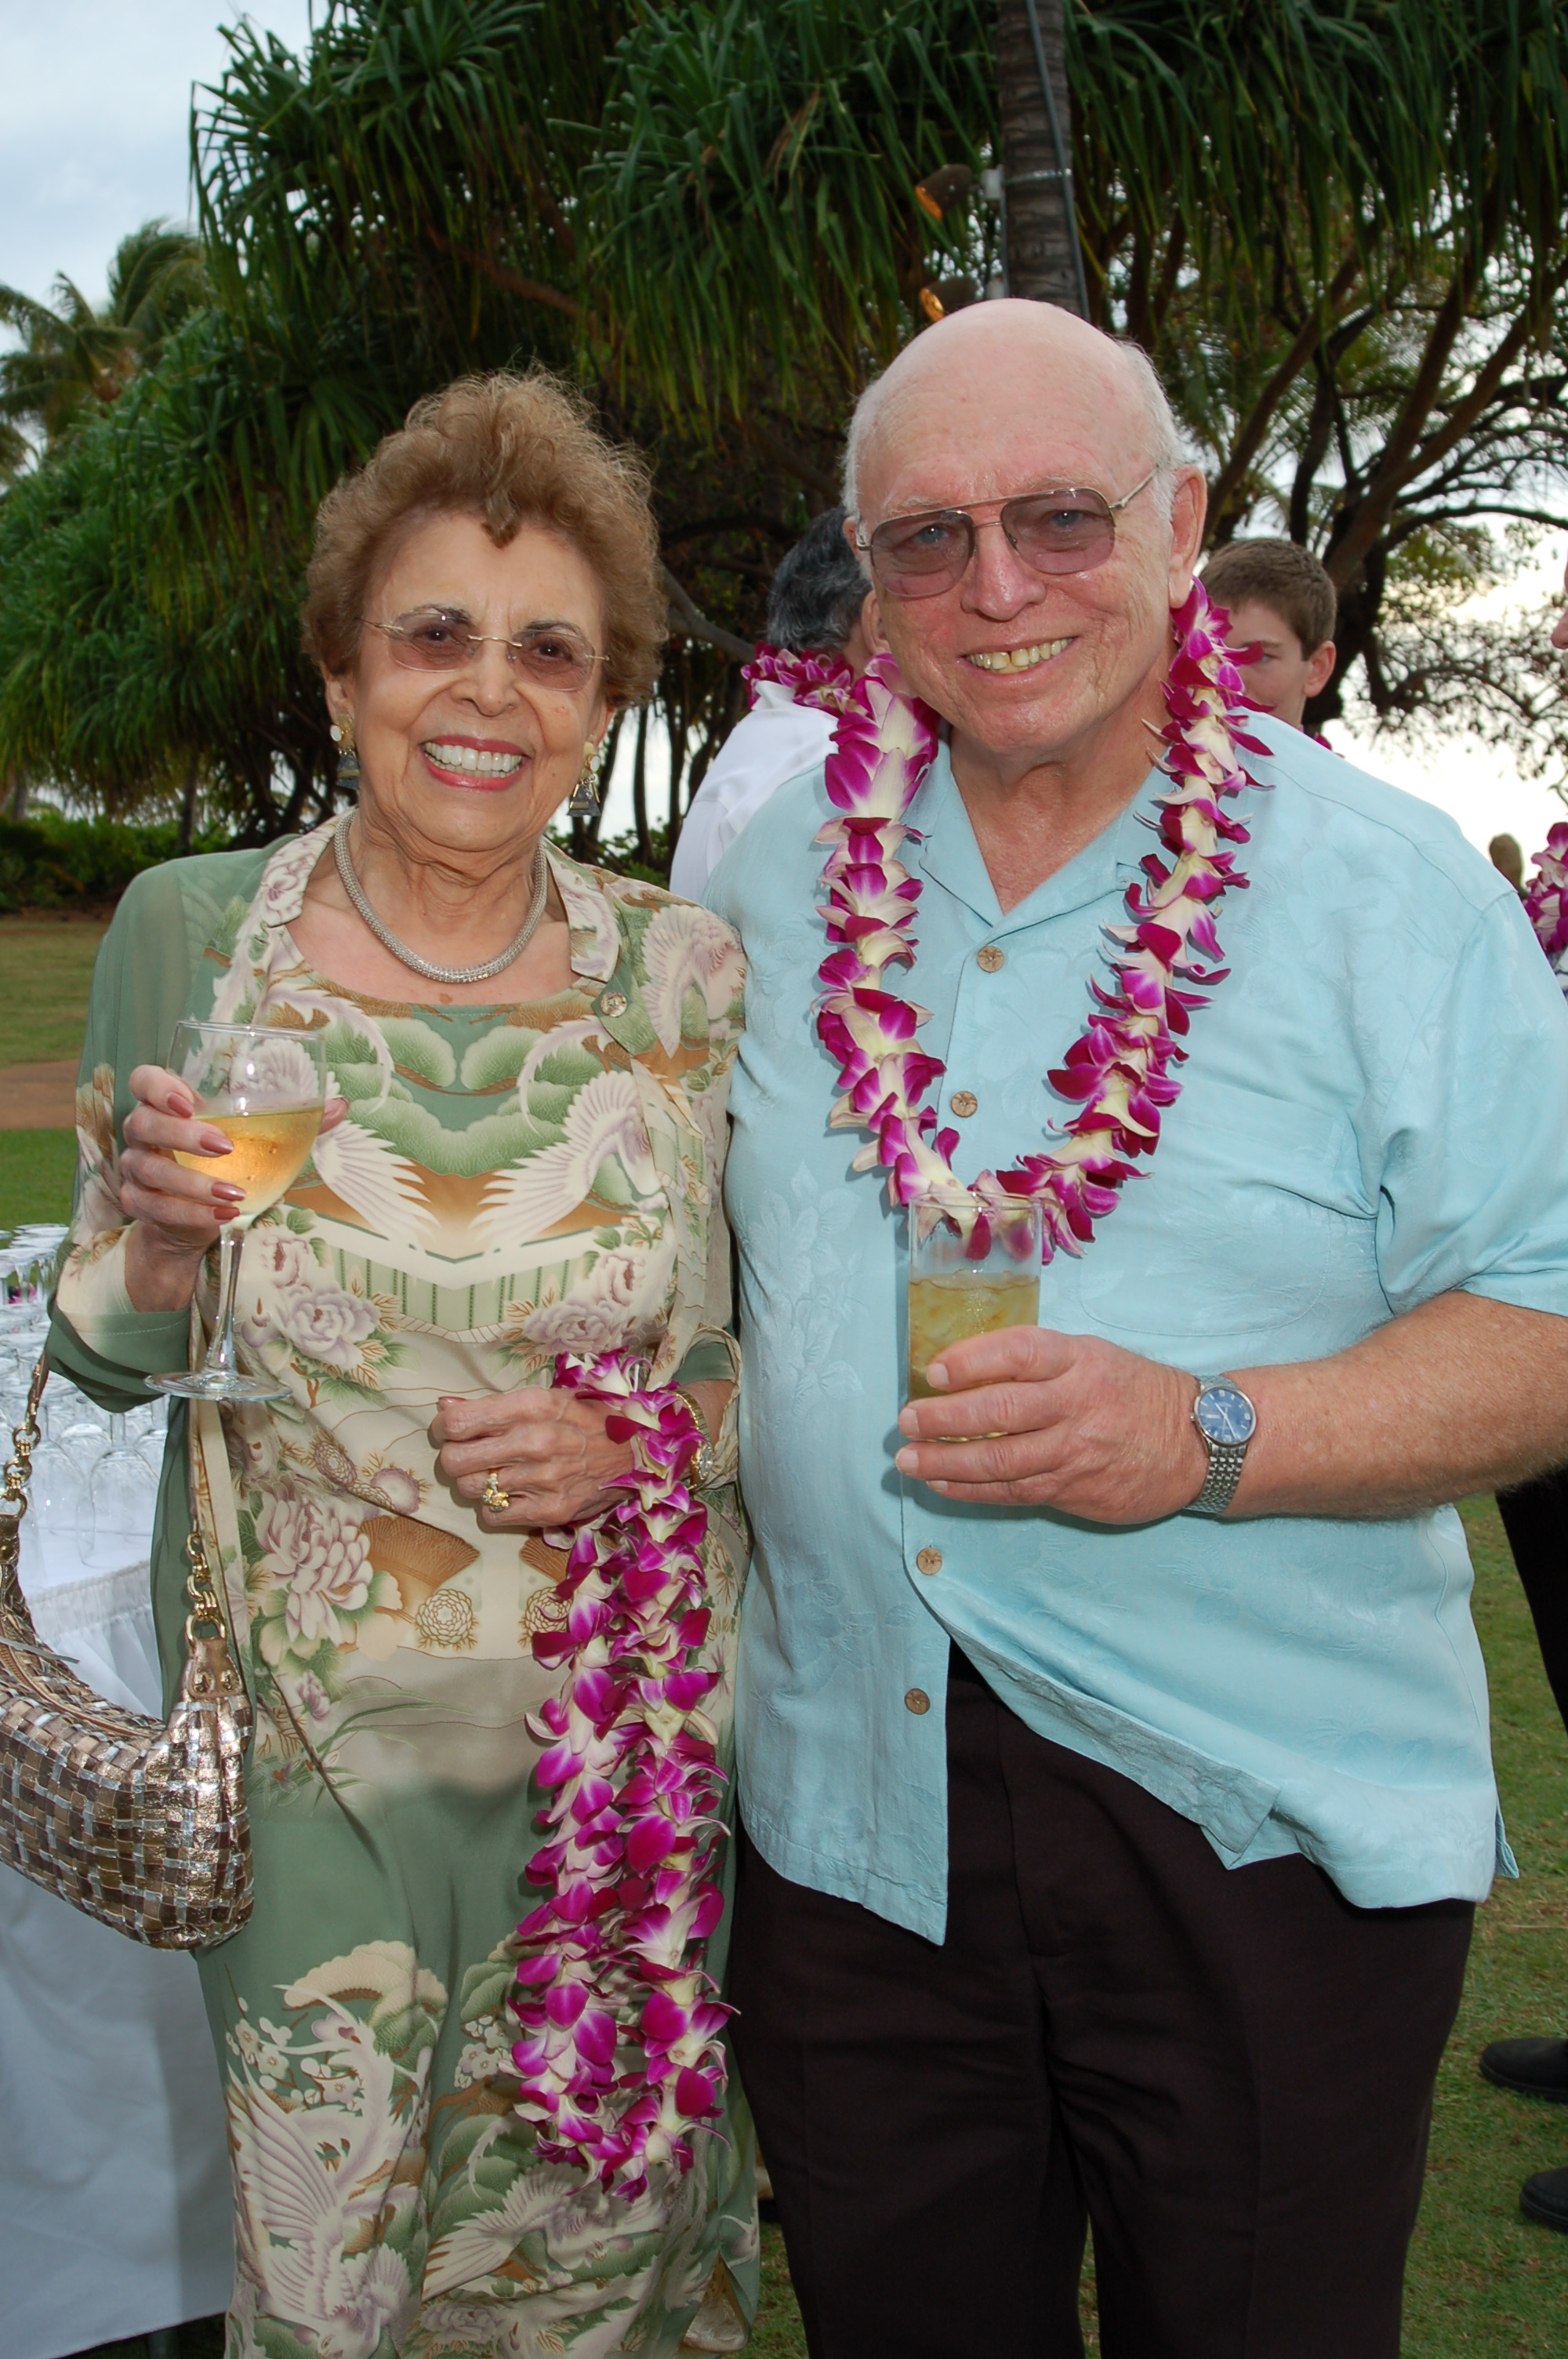 waianae jewish singles Meet latina singles in ewa beach, hawaii online & connect in the chat rooms dhu is a 100% free dating site to meet latina women in ewa beach.